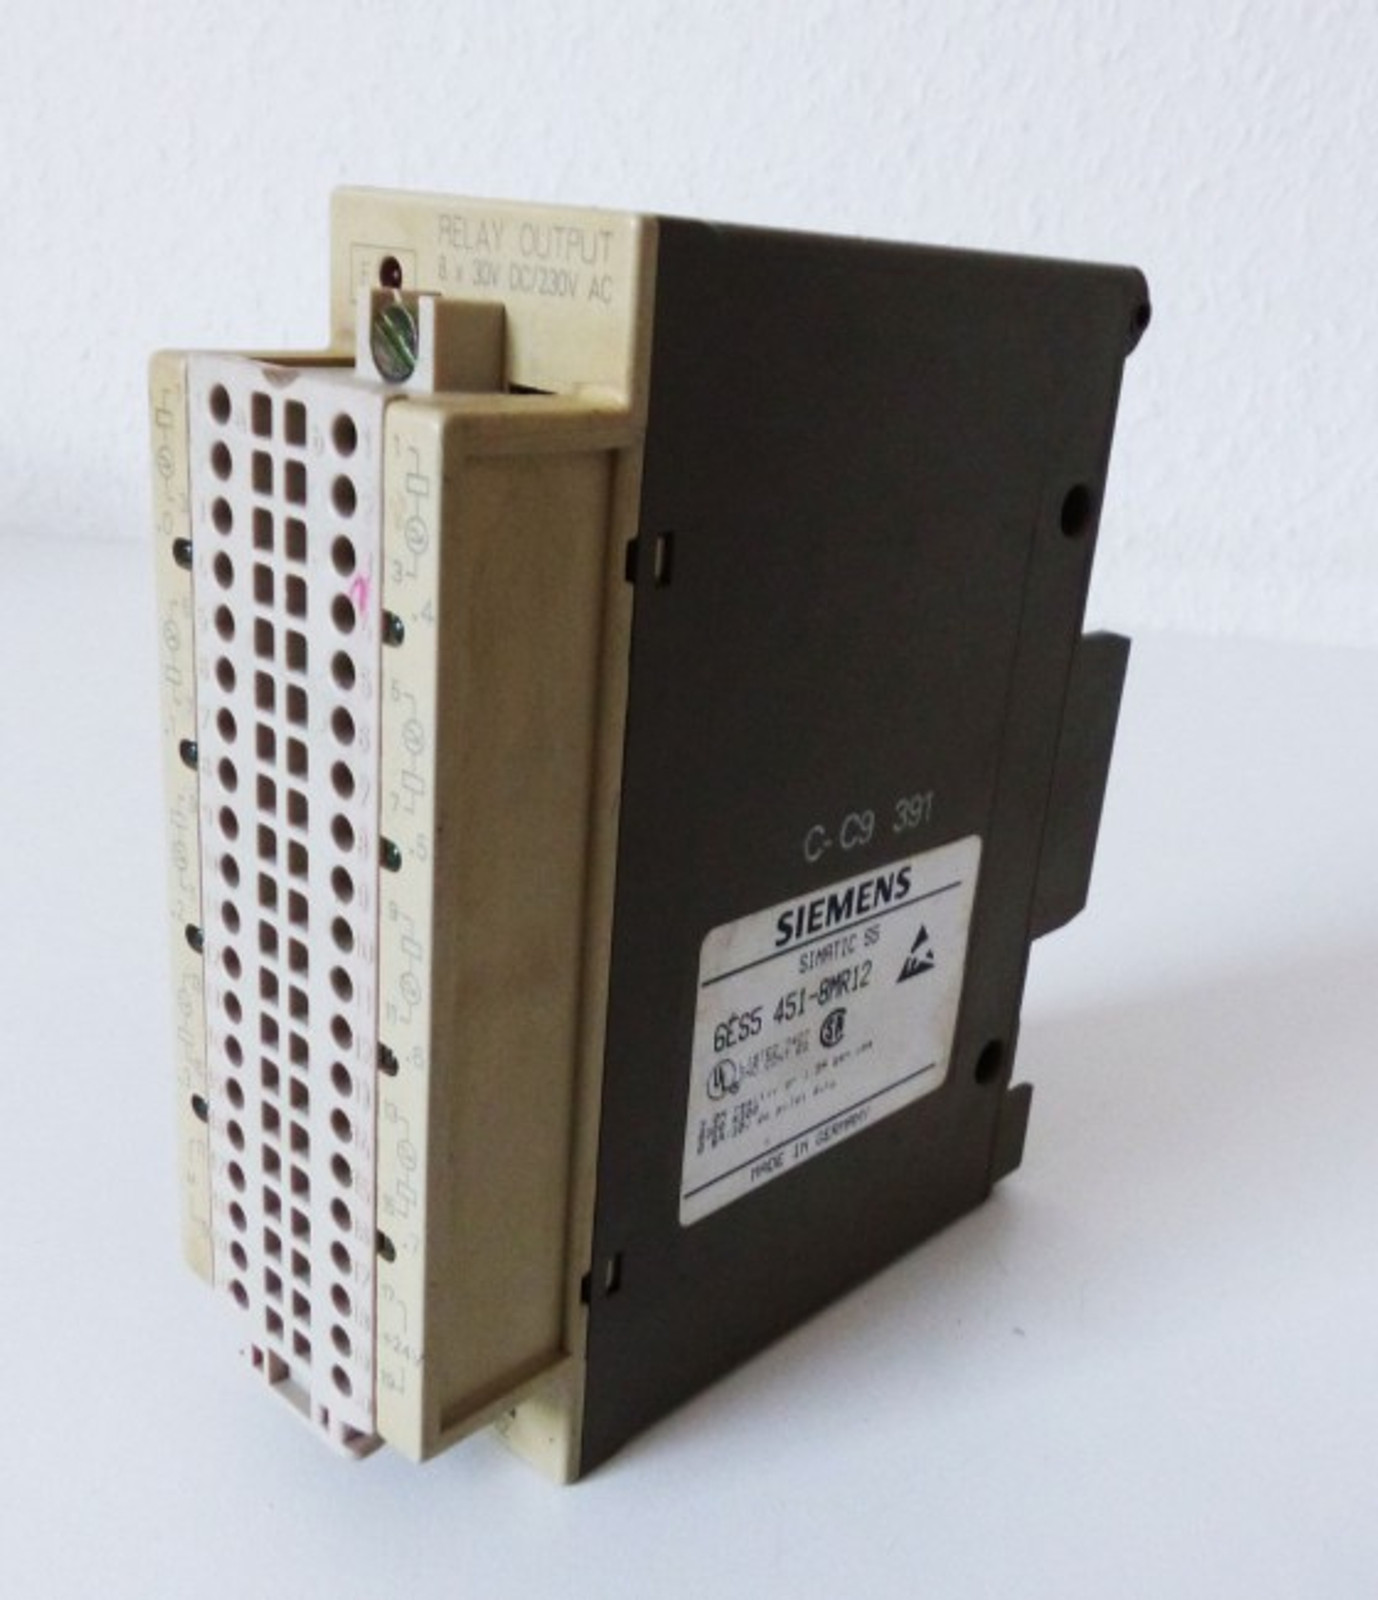 Siemens Simatic S5 6ES5451-8MR12 6ES5 451-8MR12 + Connector E-Stand: 02 -used-